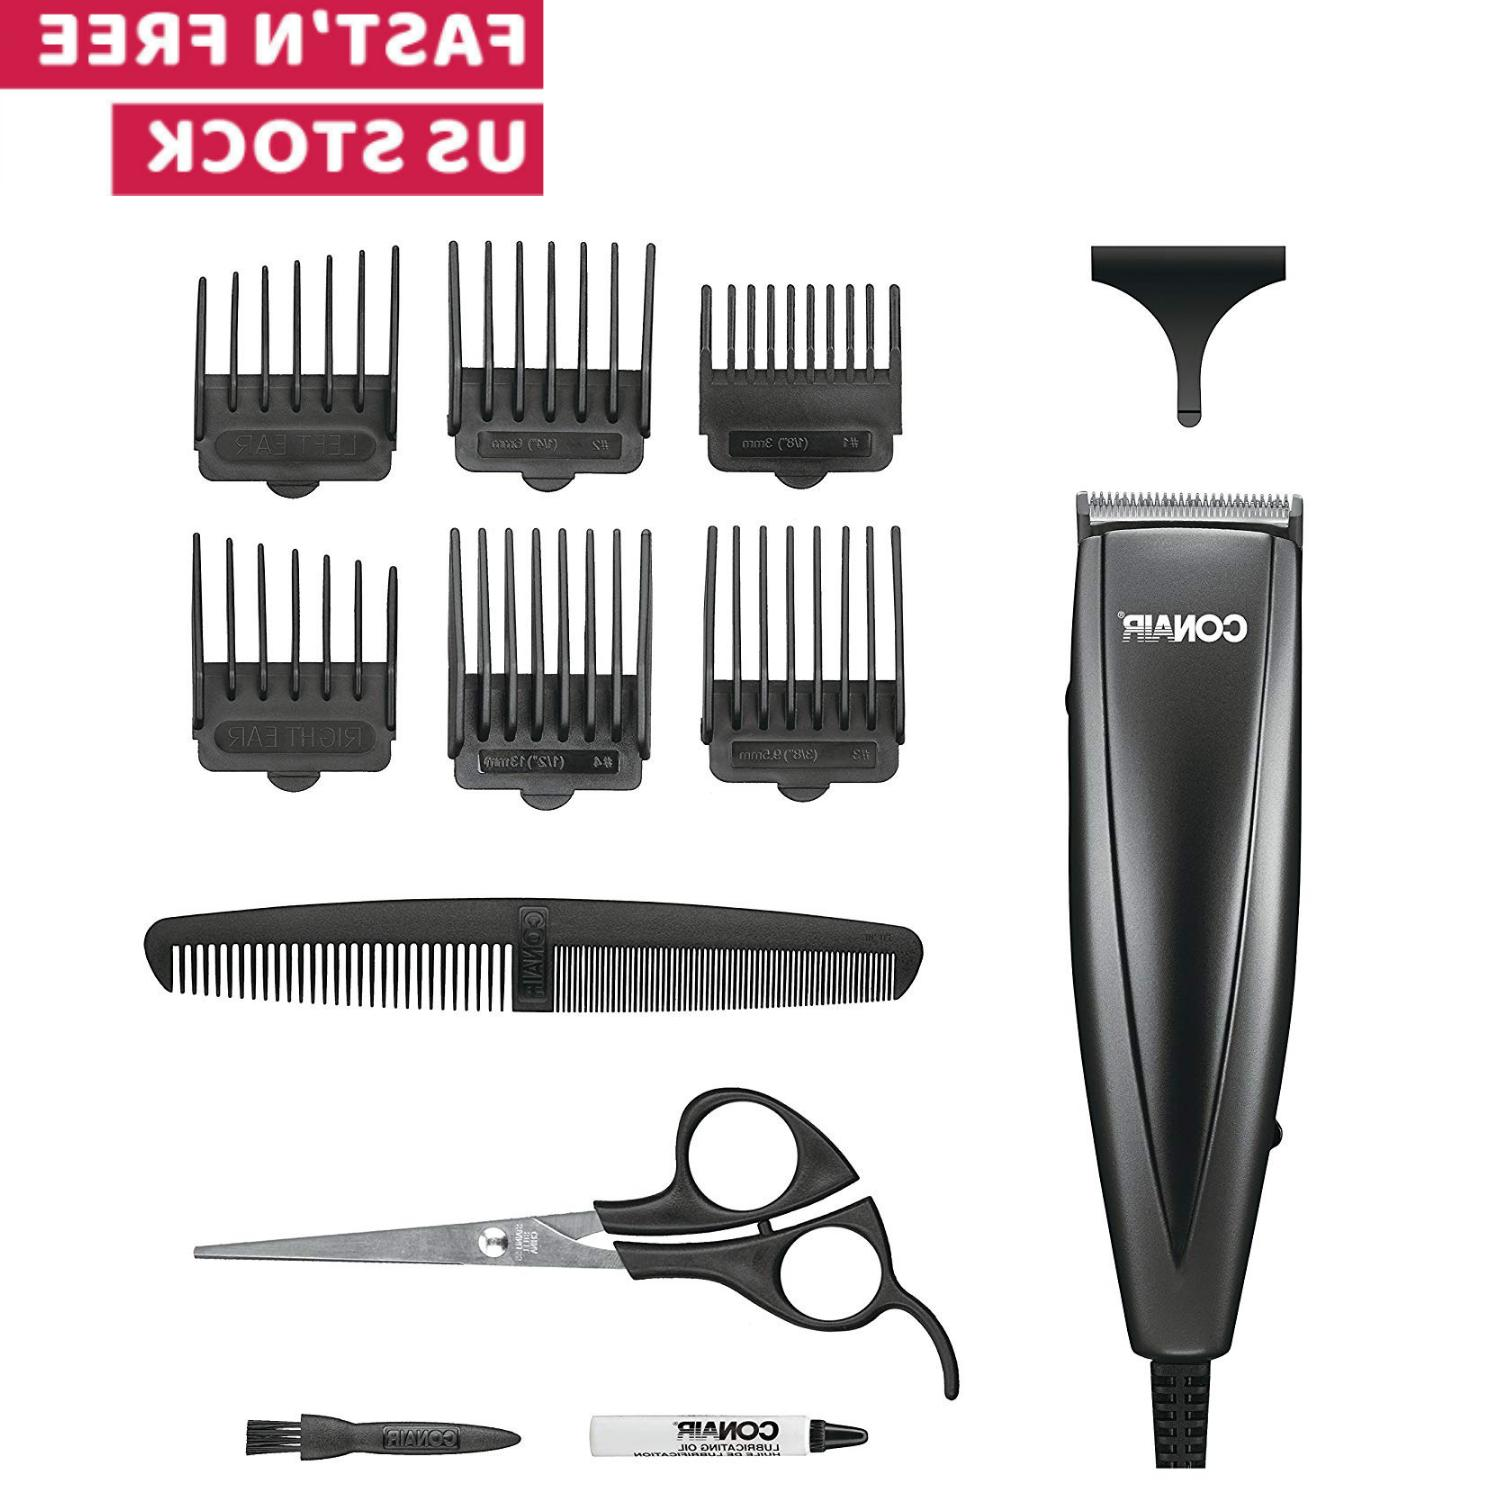 PROFESSIONAL HAIR CUT Machine Clippers Trimmer Kit Barber Sa